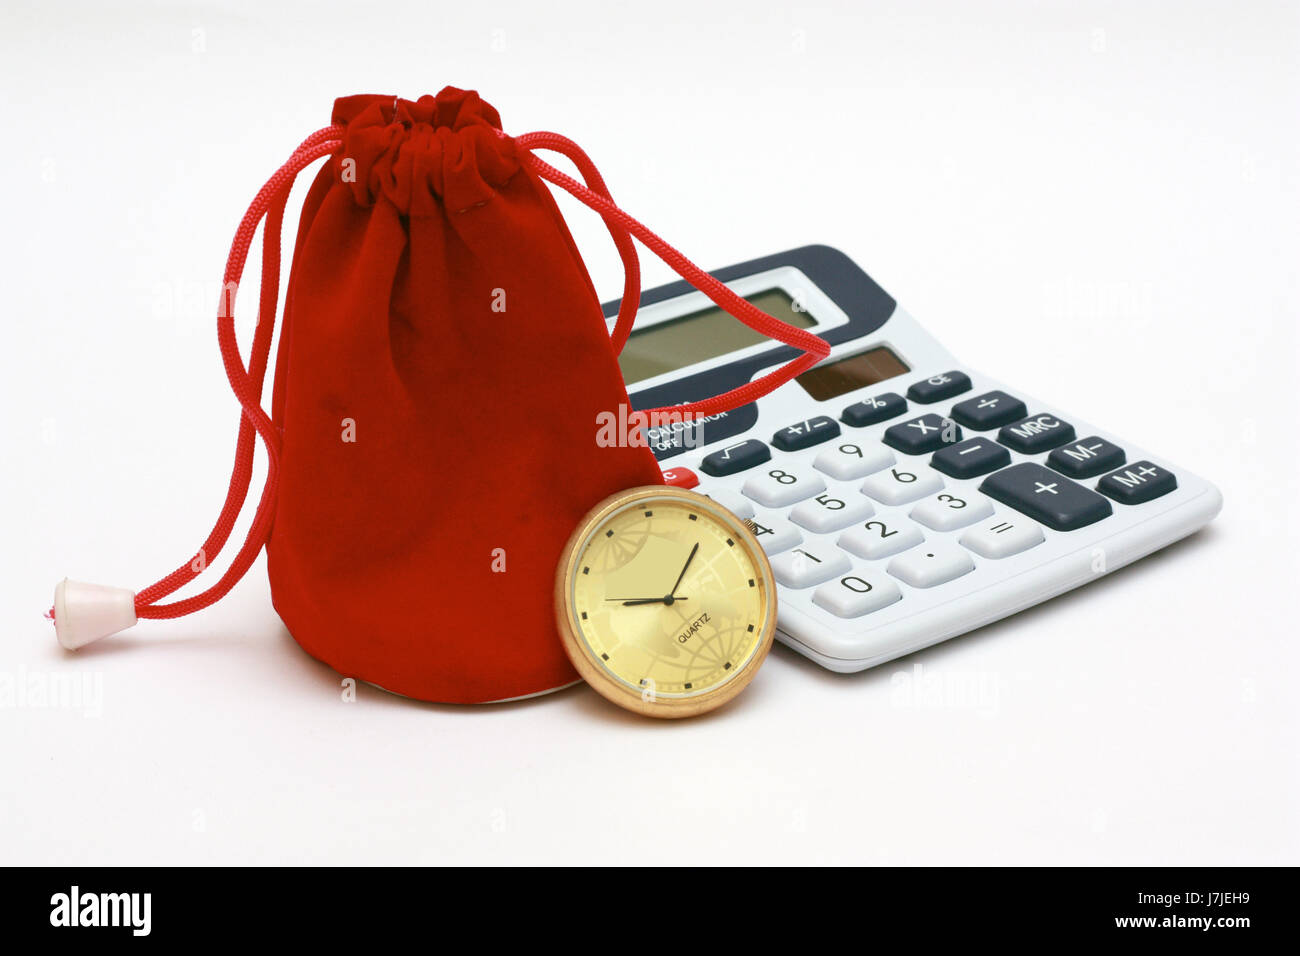 Accounting is essential in any business. Business is a number game. Everything is counted in numbers. The money - Stock Image